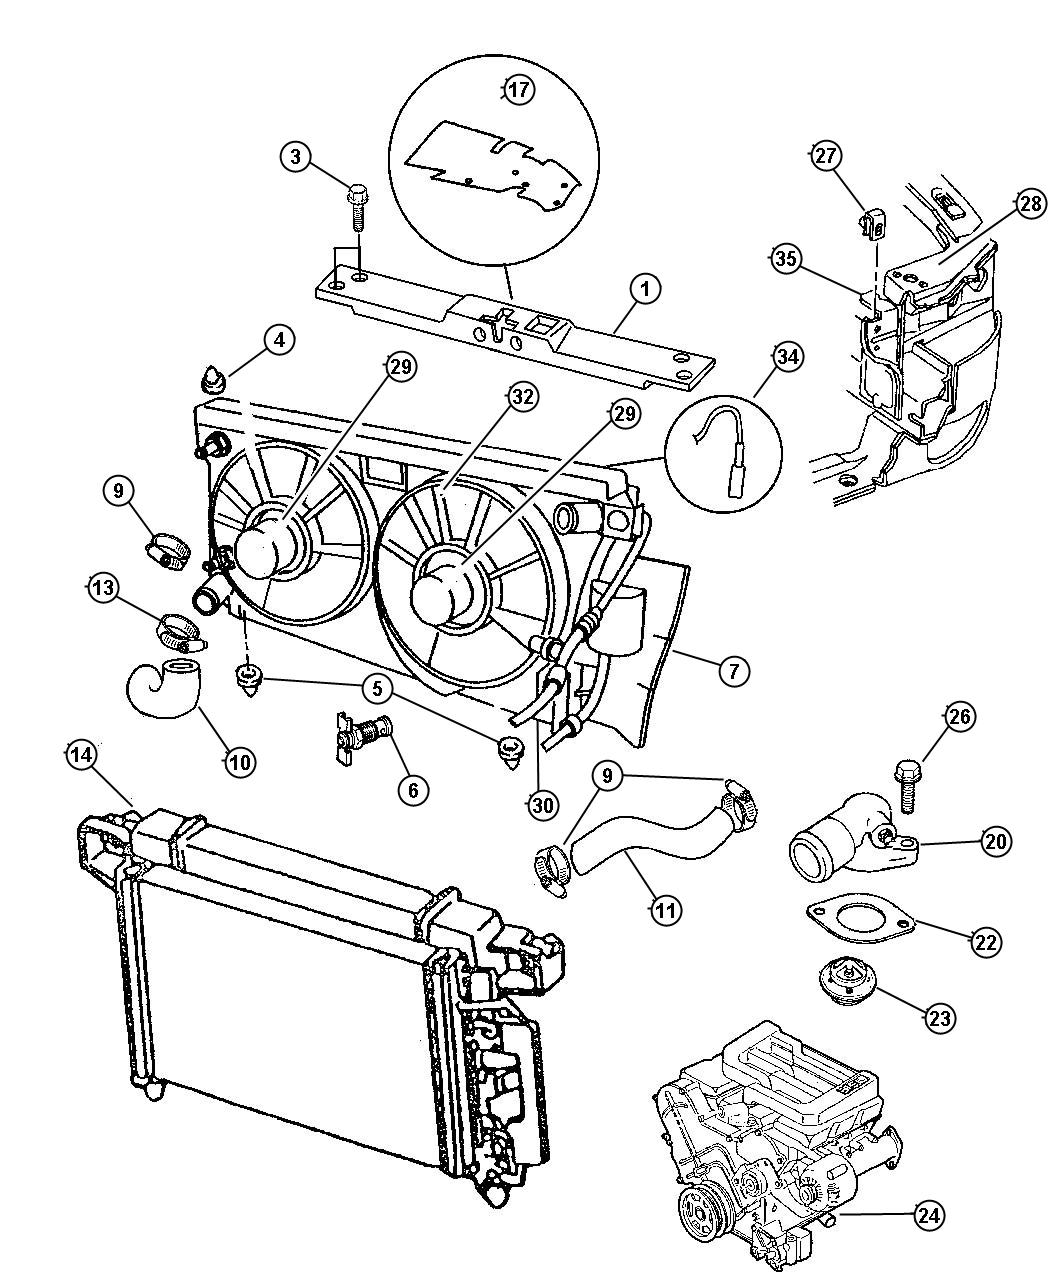 1997 dodge intrepid engine diagram 2002 ford escape stereo wiring housing water inlet connector